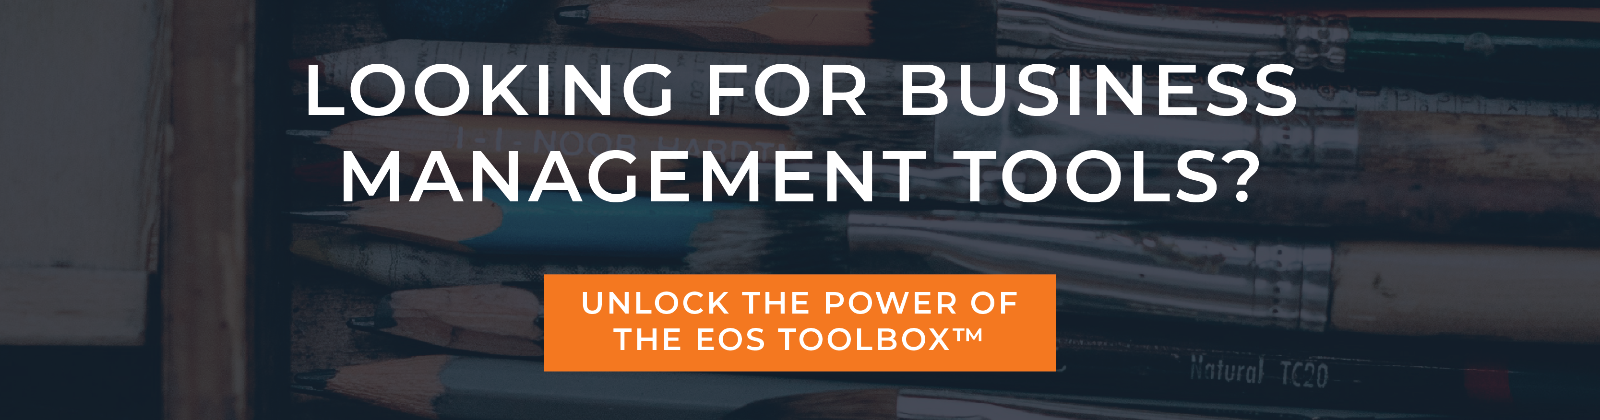 Looking for business management tools? The EOS Toolbox is full of powerful real-world tools